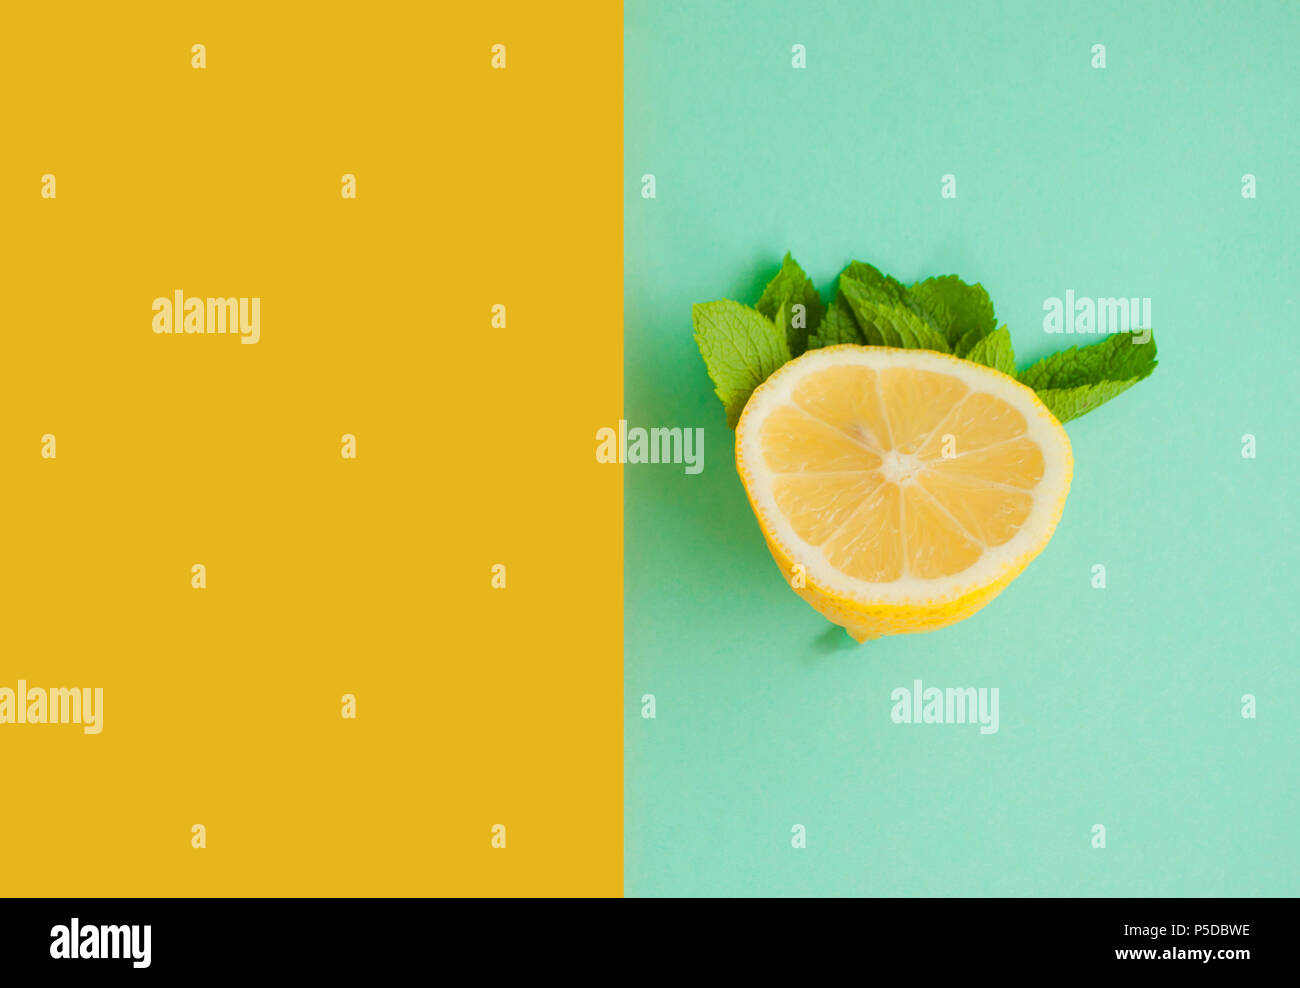 Flat lay of lemonade ingredients. - Stock Image